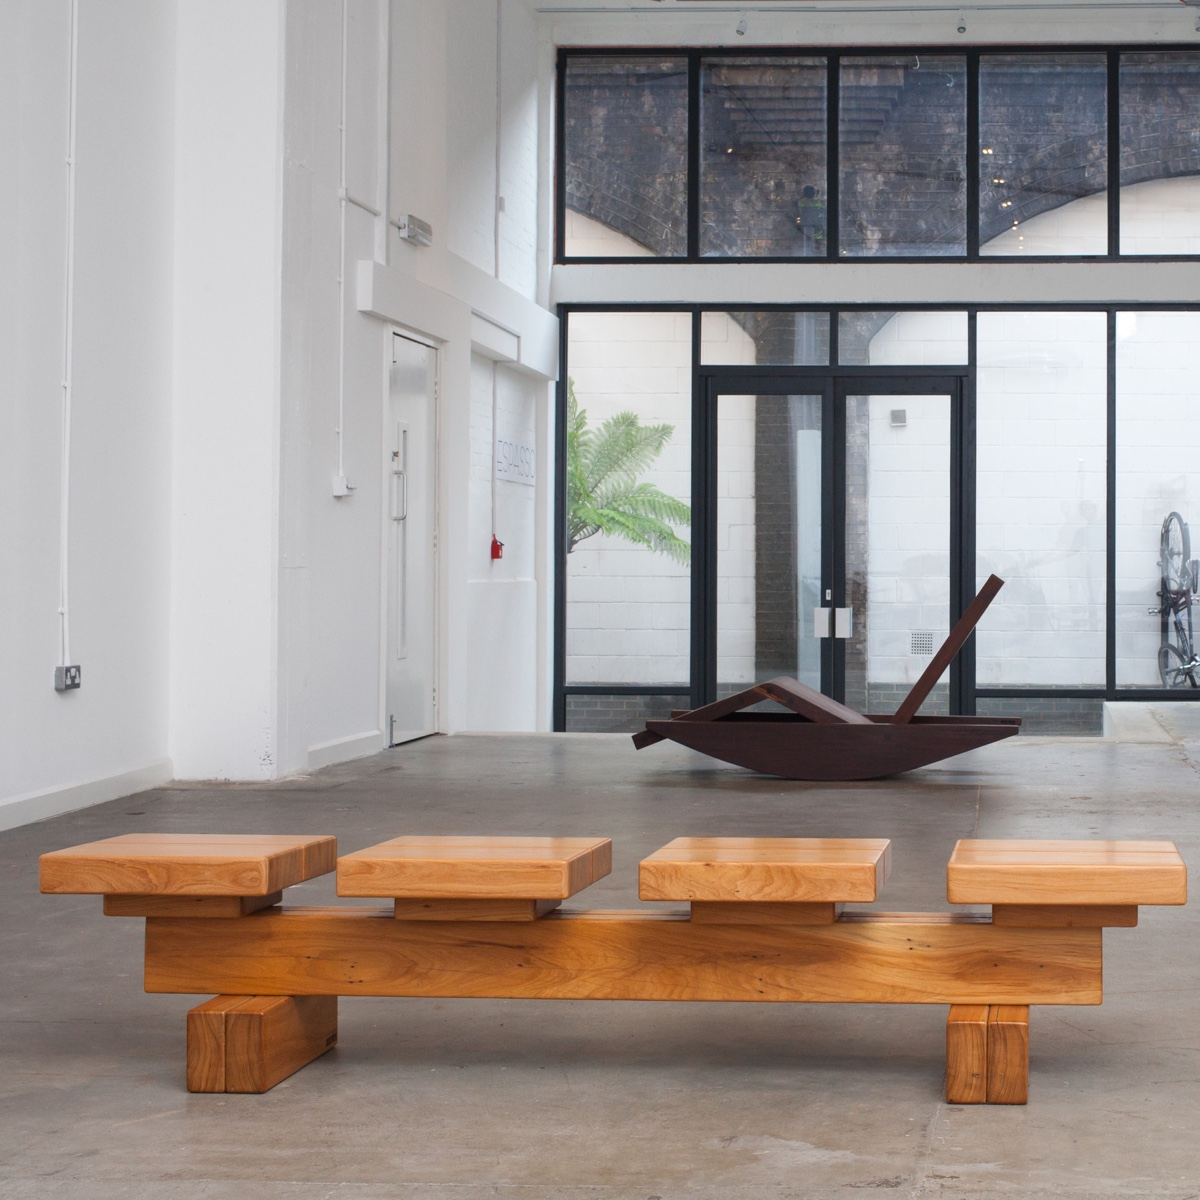 Tablete by Zanini de Zanine is a limited edition bench, handcrafted from reclaimed peroba timber.